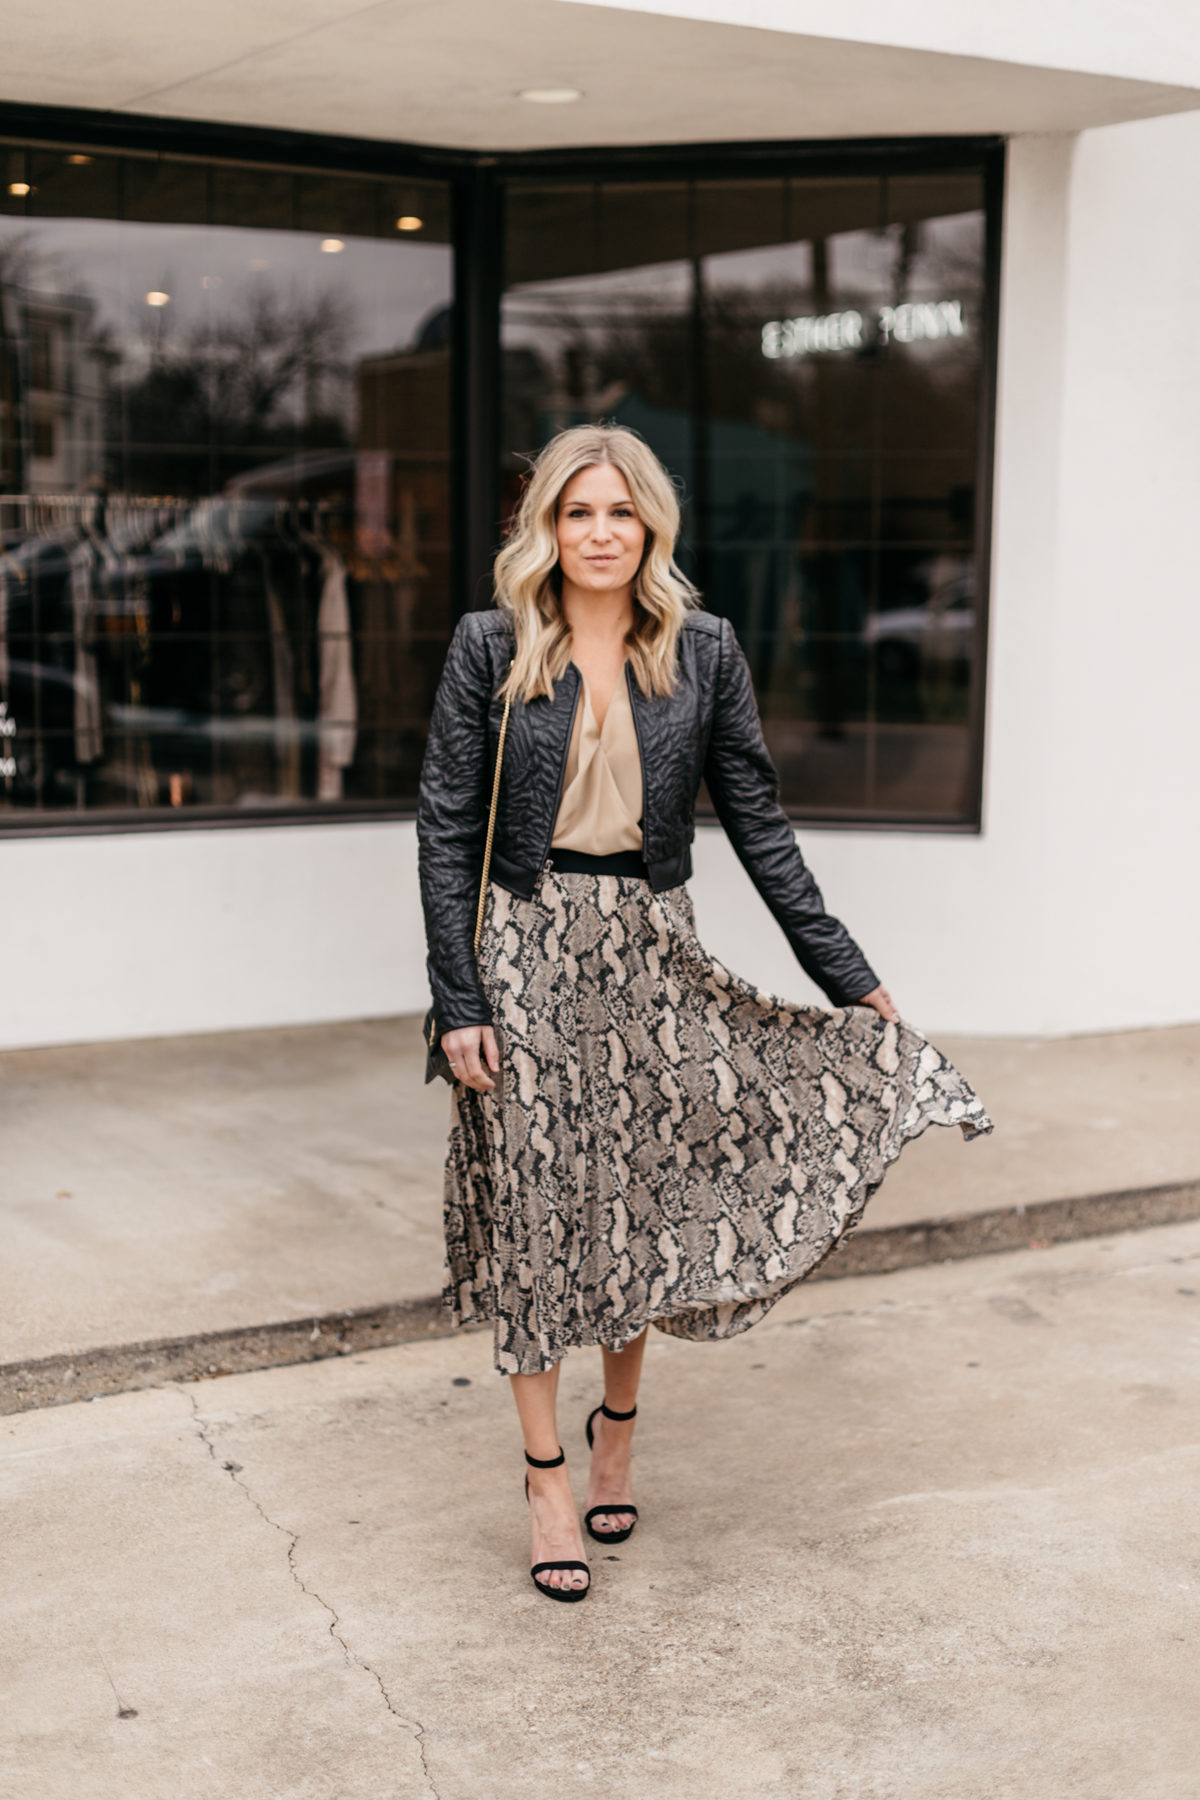 Leopard Skirt // Twist Top // Leather Jacket // Black Pumps